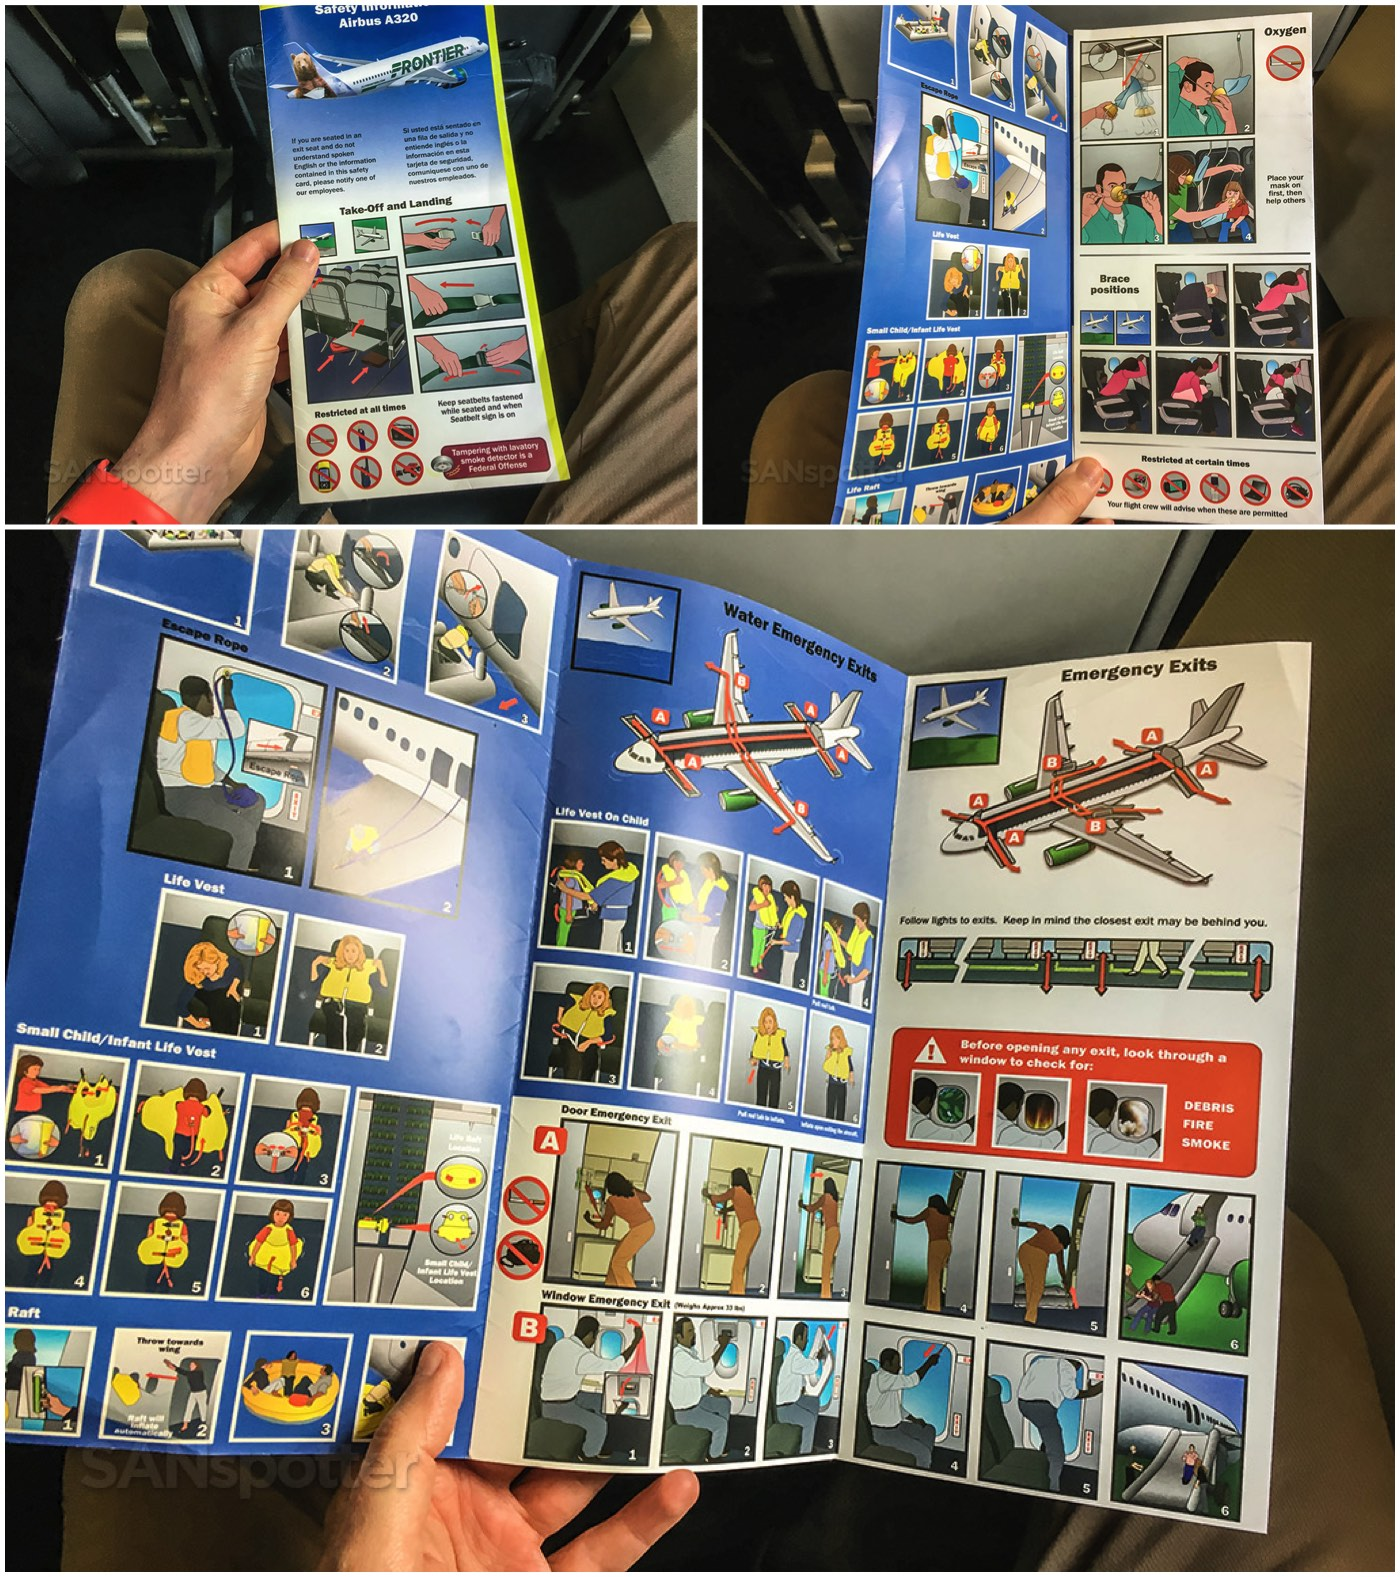 Frontier Airlines A320neo safety card